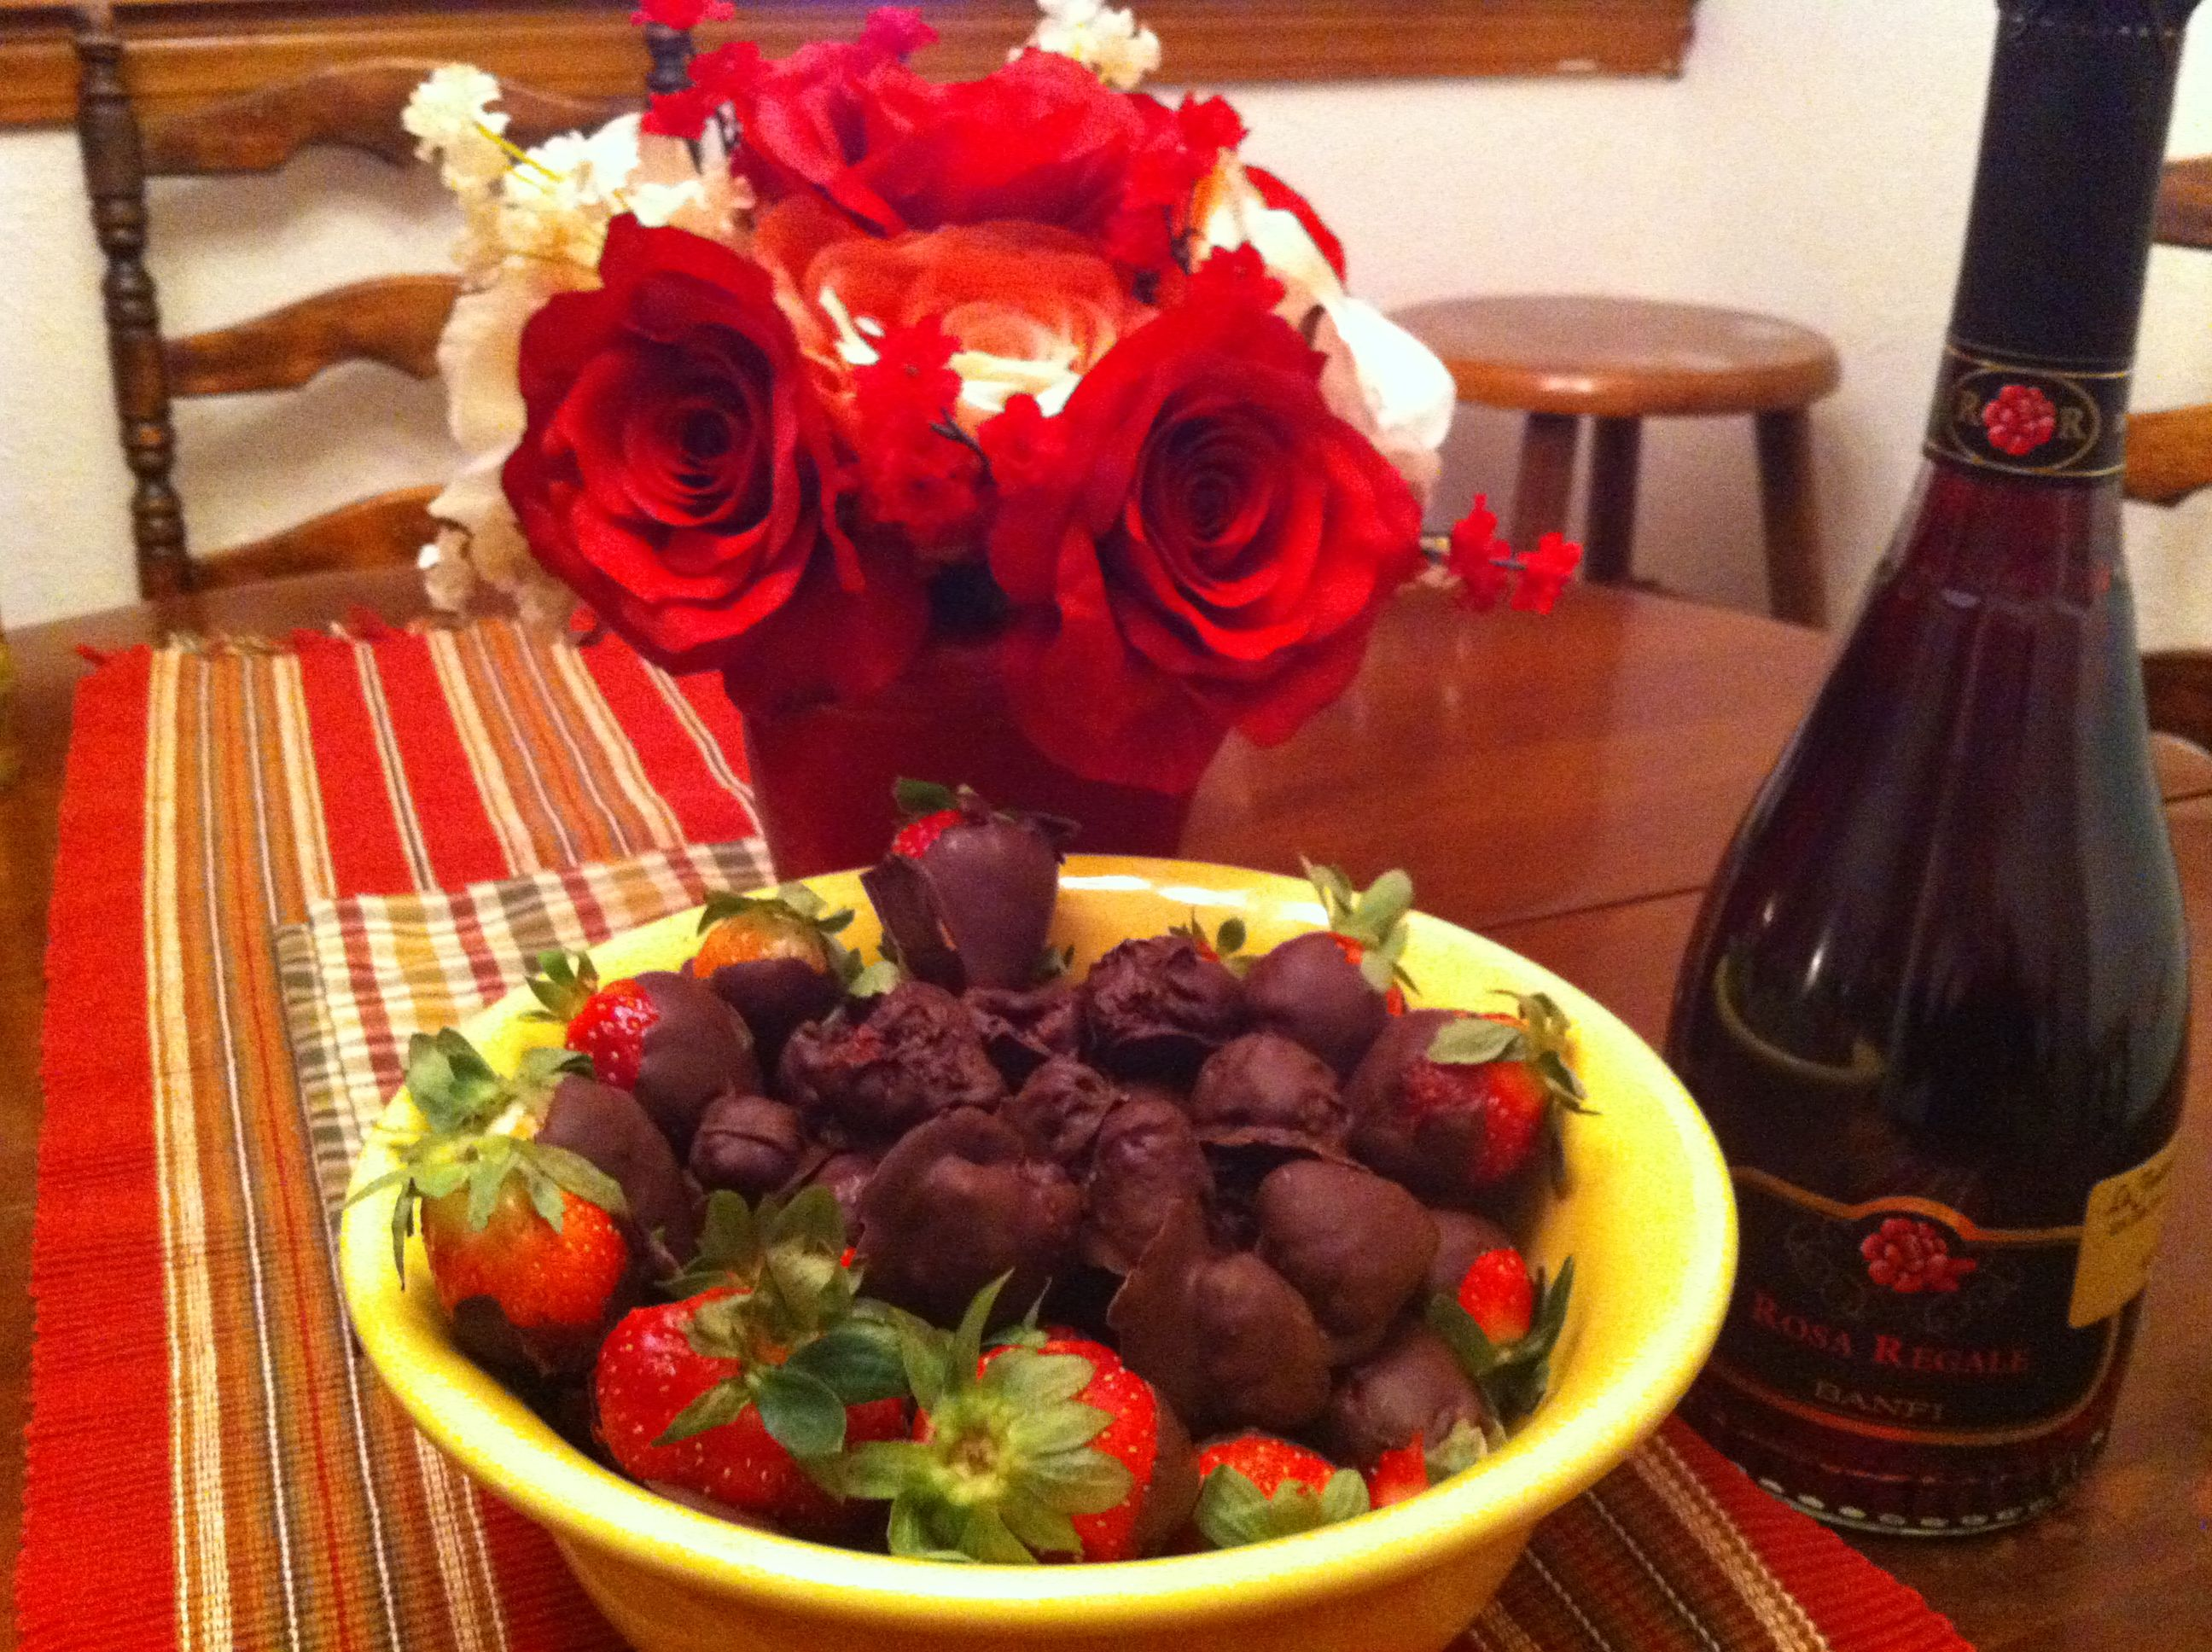 My homemade Godiva chocolate covered strawberries | Food and Drink ...